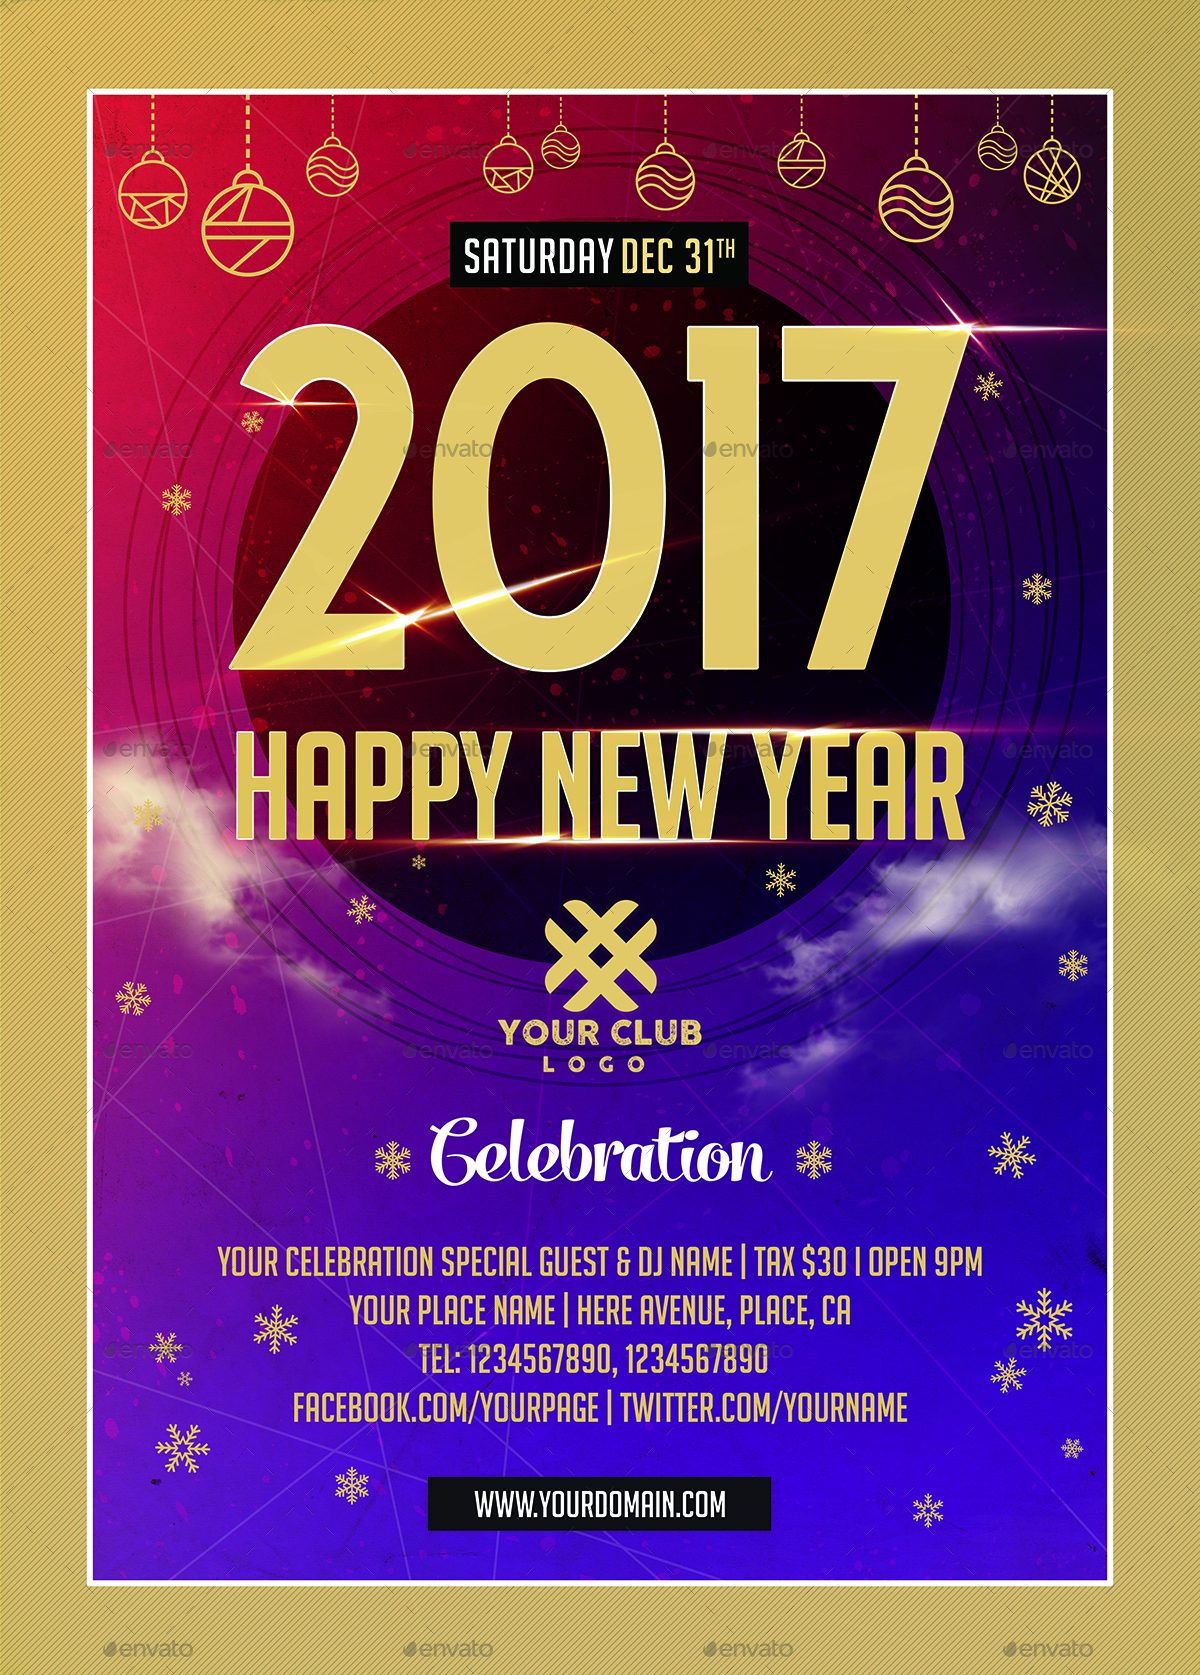 new year celebration flyer templates by xepeec